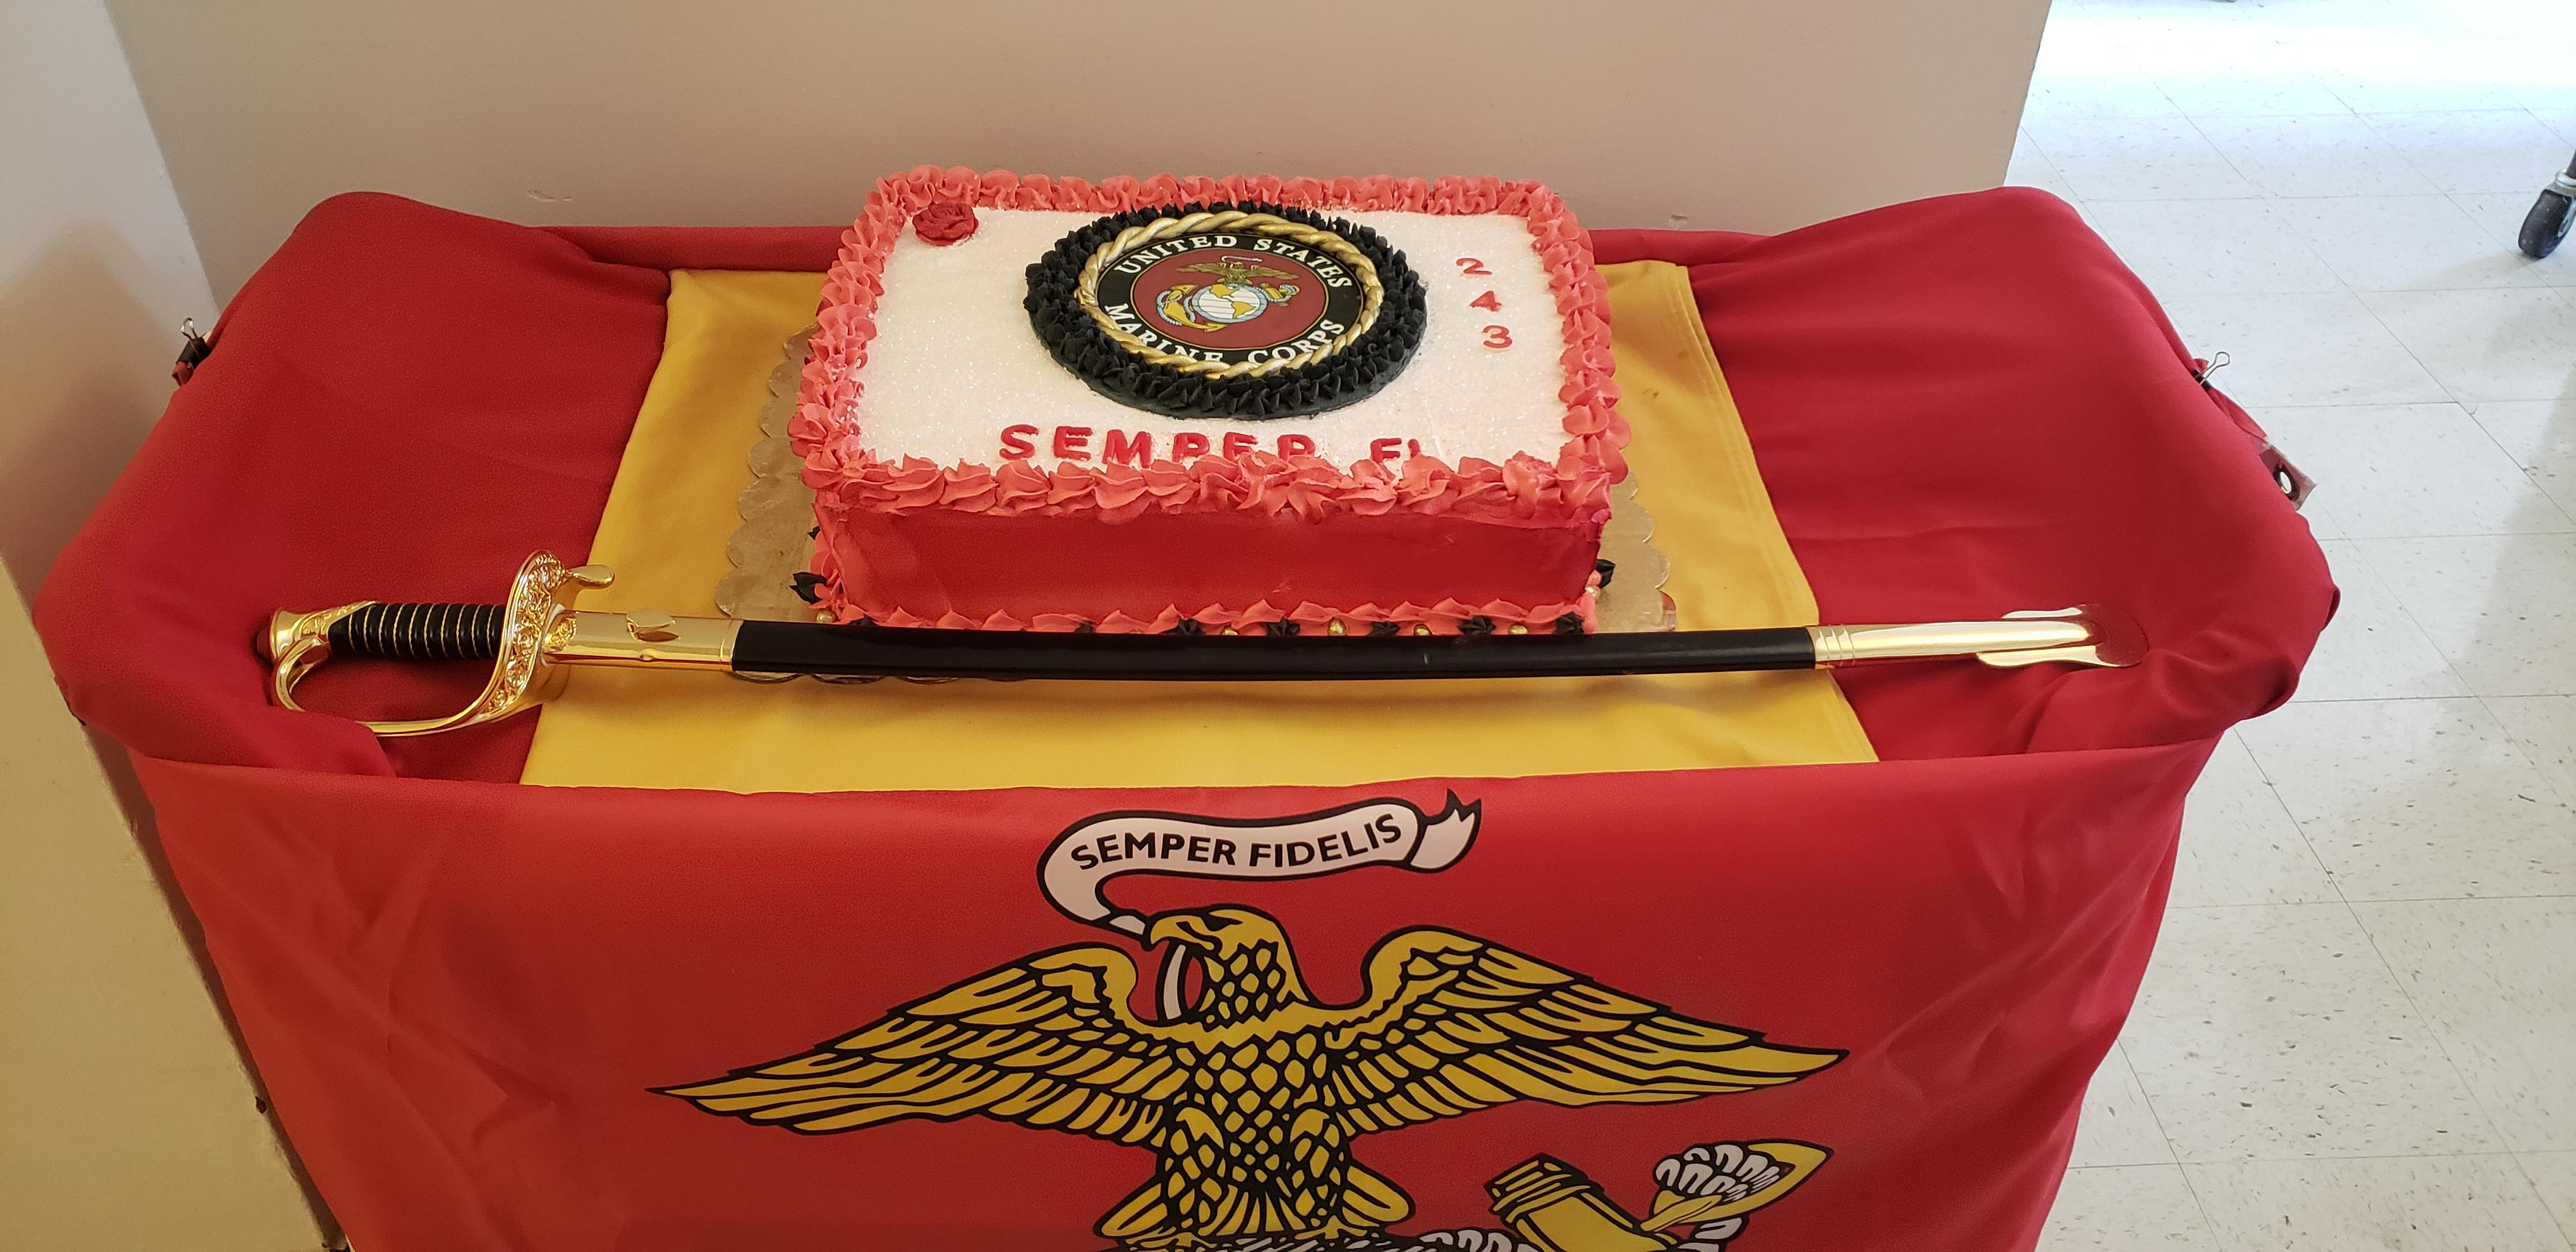 Cake My Mother Made For Our Marine Corps Birthday Ceremony At The Va I Work At She Is A Marine Wife And Mother Usmc